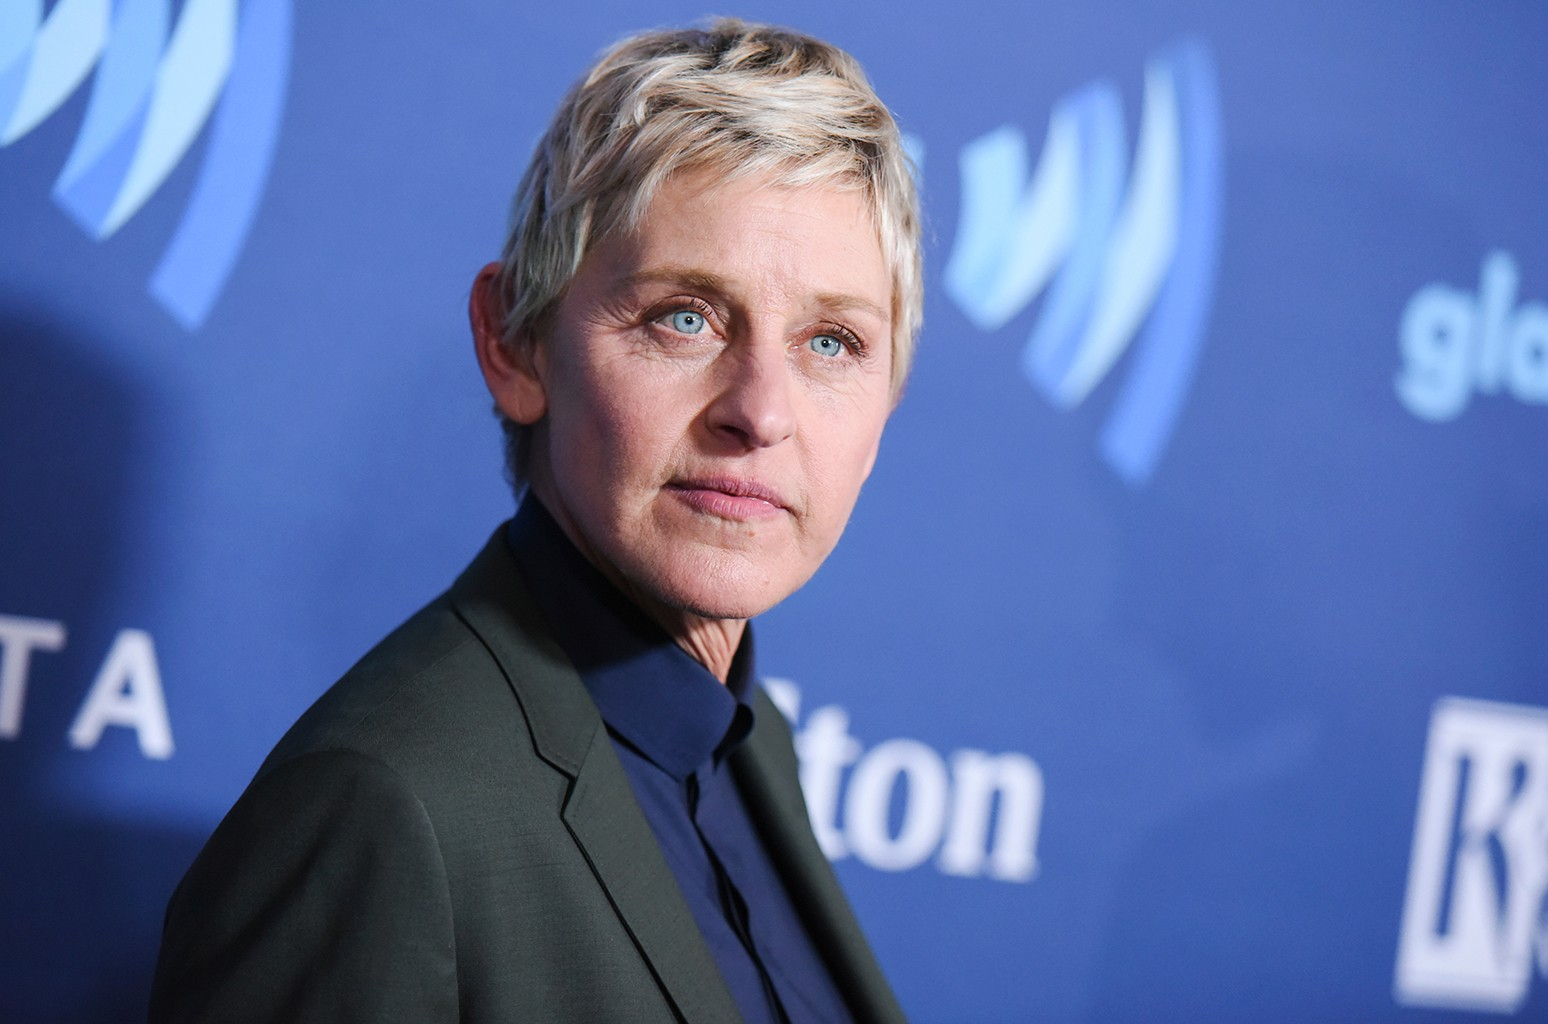 Ellen DeGeneres arrives at the 26th Annual GLAAD Media Awards held at the Beverly Hilton Hotel on March 21, 2015 in Beverly Hills, Calif.